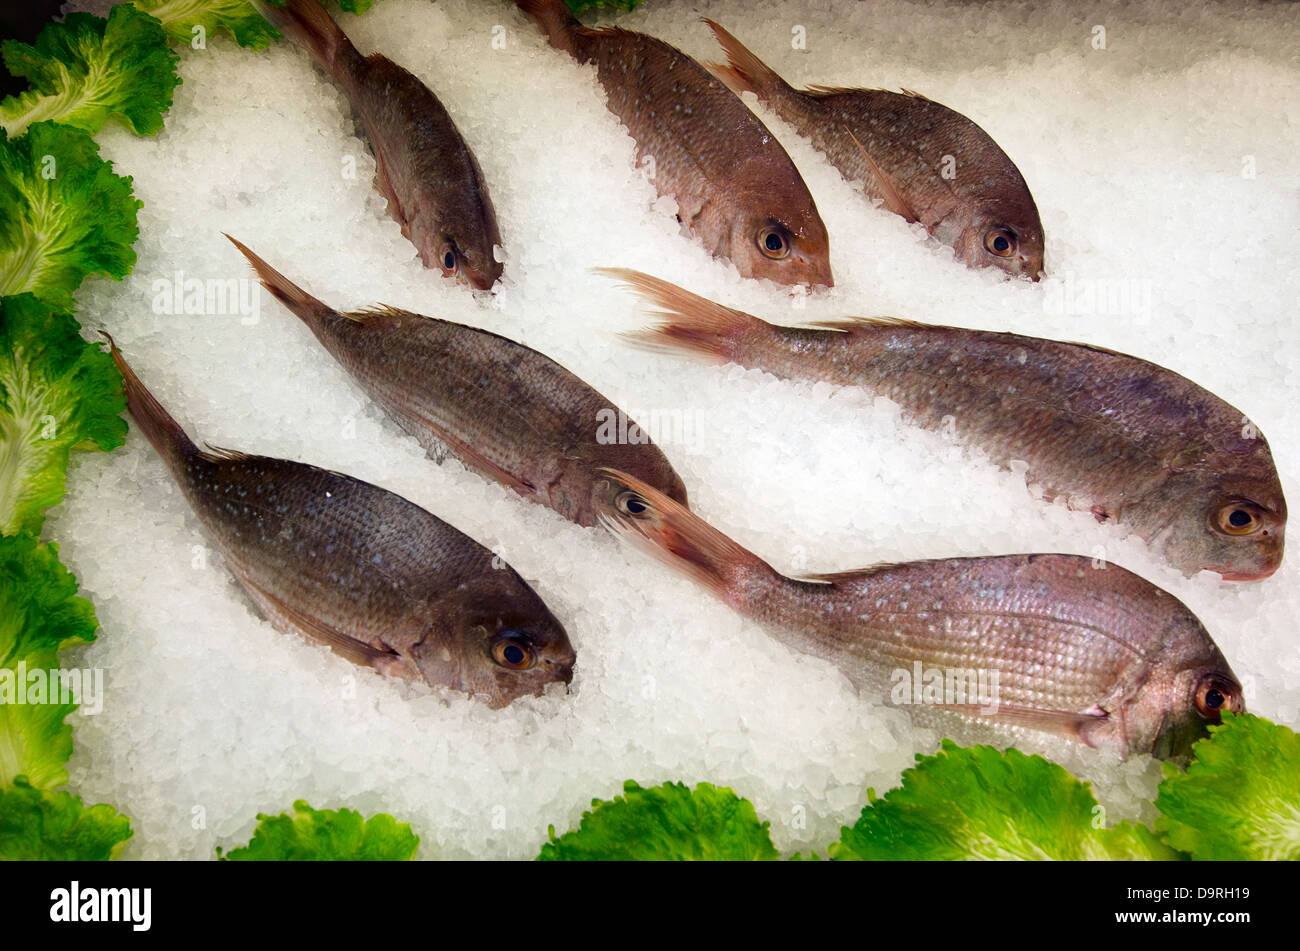 Fresh Snapper fish in ice on display in farmers market. Stock Photo